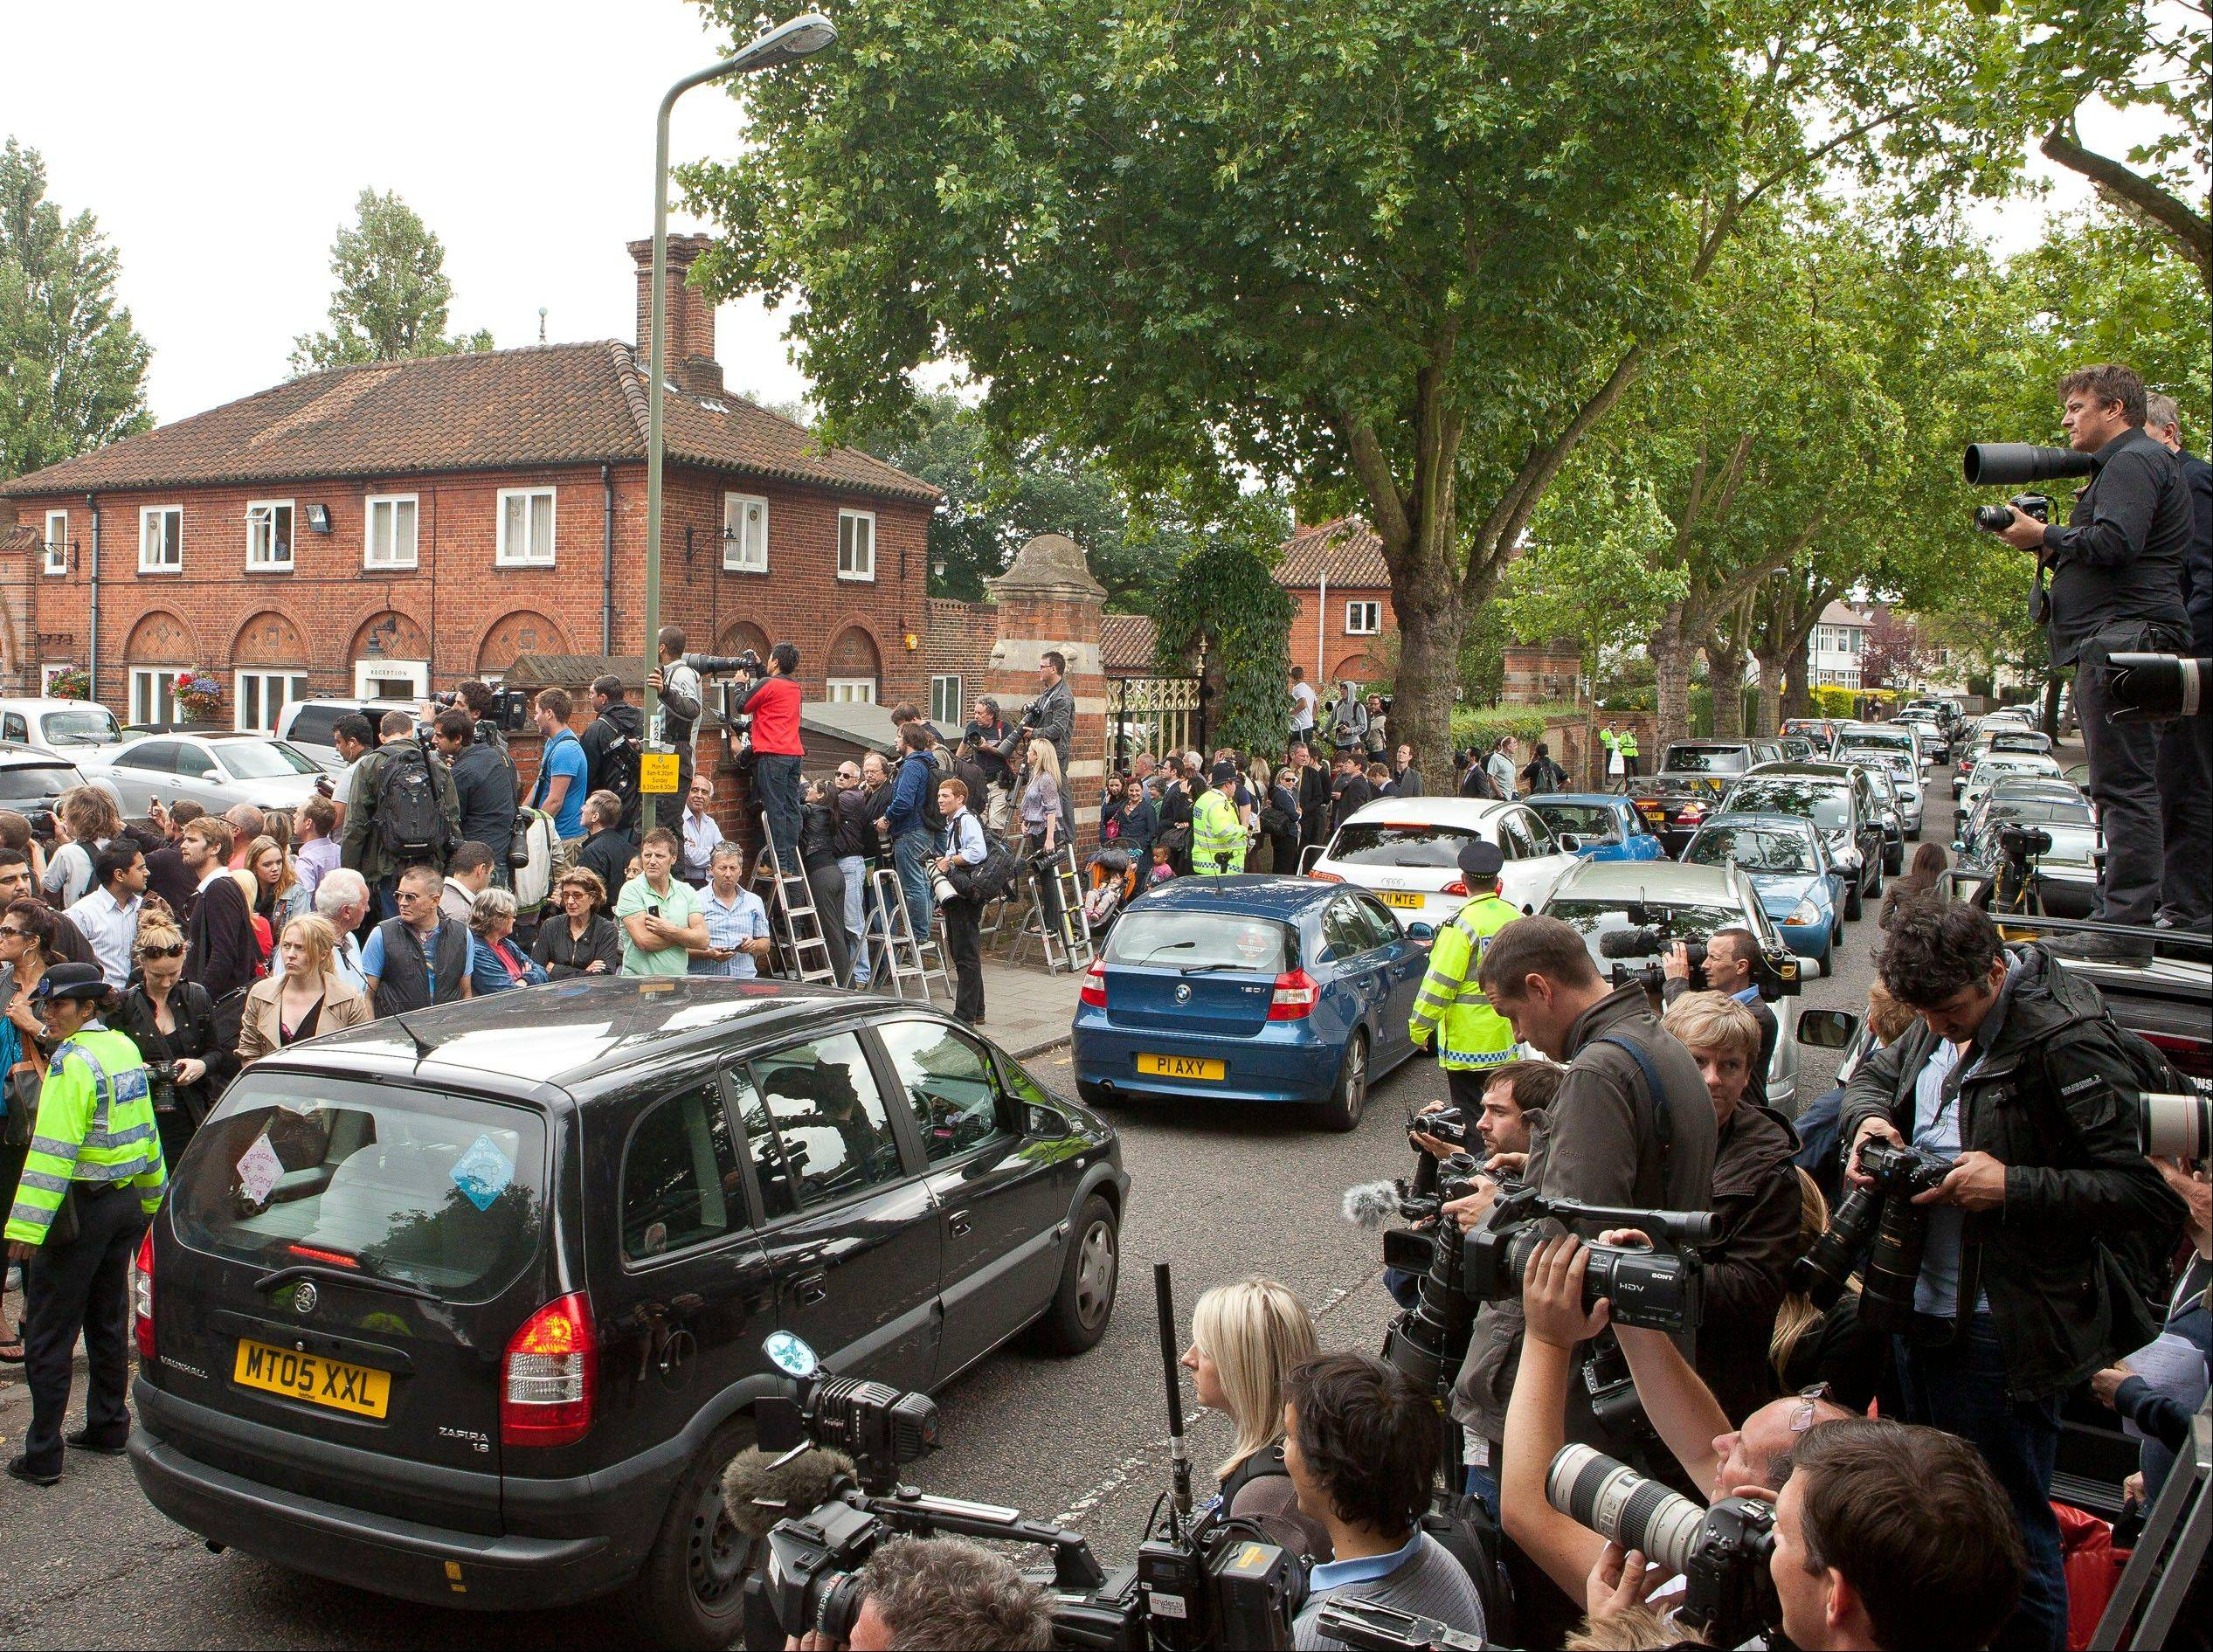 Members of the media gather outside the entrance to Golders Green Crematorium in London, Tuesday July 26, 2011, as mourners arrive for the funeral of singer Amy Winehouse. The soul diva, who had battled alcohol and drug addiction, was found dead Saturday at her London home. She was 27.